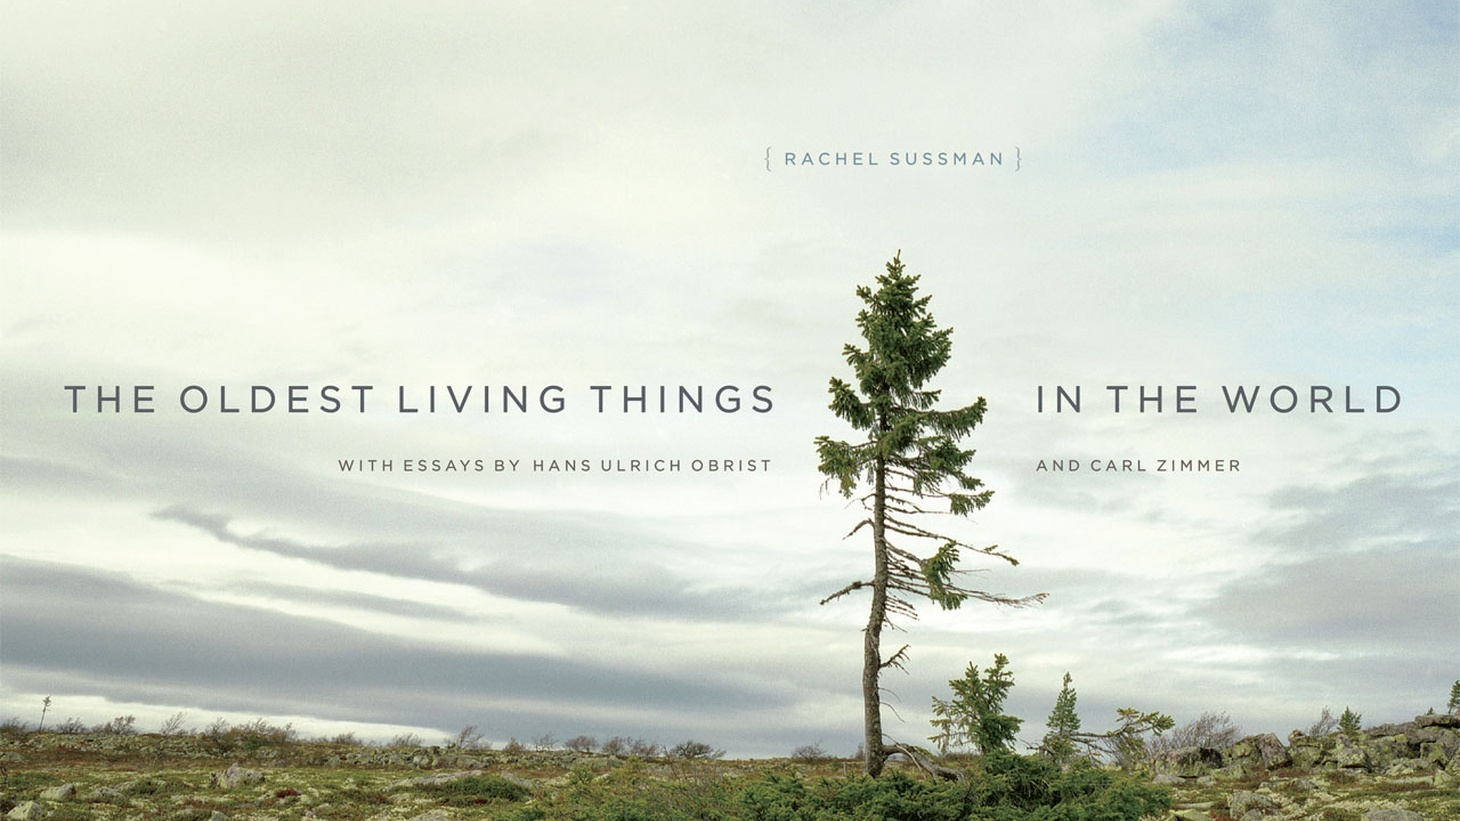 The oldest living thing in the world is a six-hundred-thousand-year-old bacterium, discovered in the permafrost of Siberia. From that bacteria to California's Giant Sequoias to ancient eucalyptus trees in Australia, Rachel Sussman has spent the better part of the last decade seeking out the oldest living things in the world.